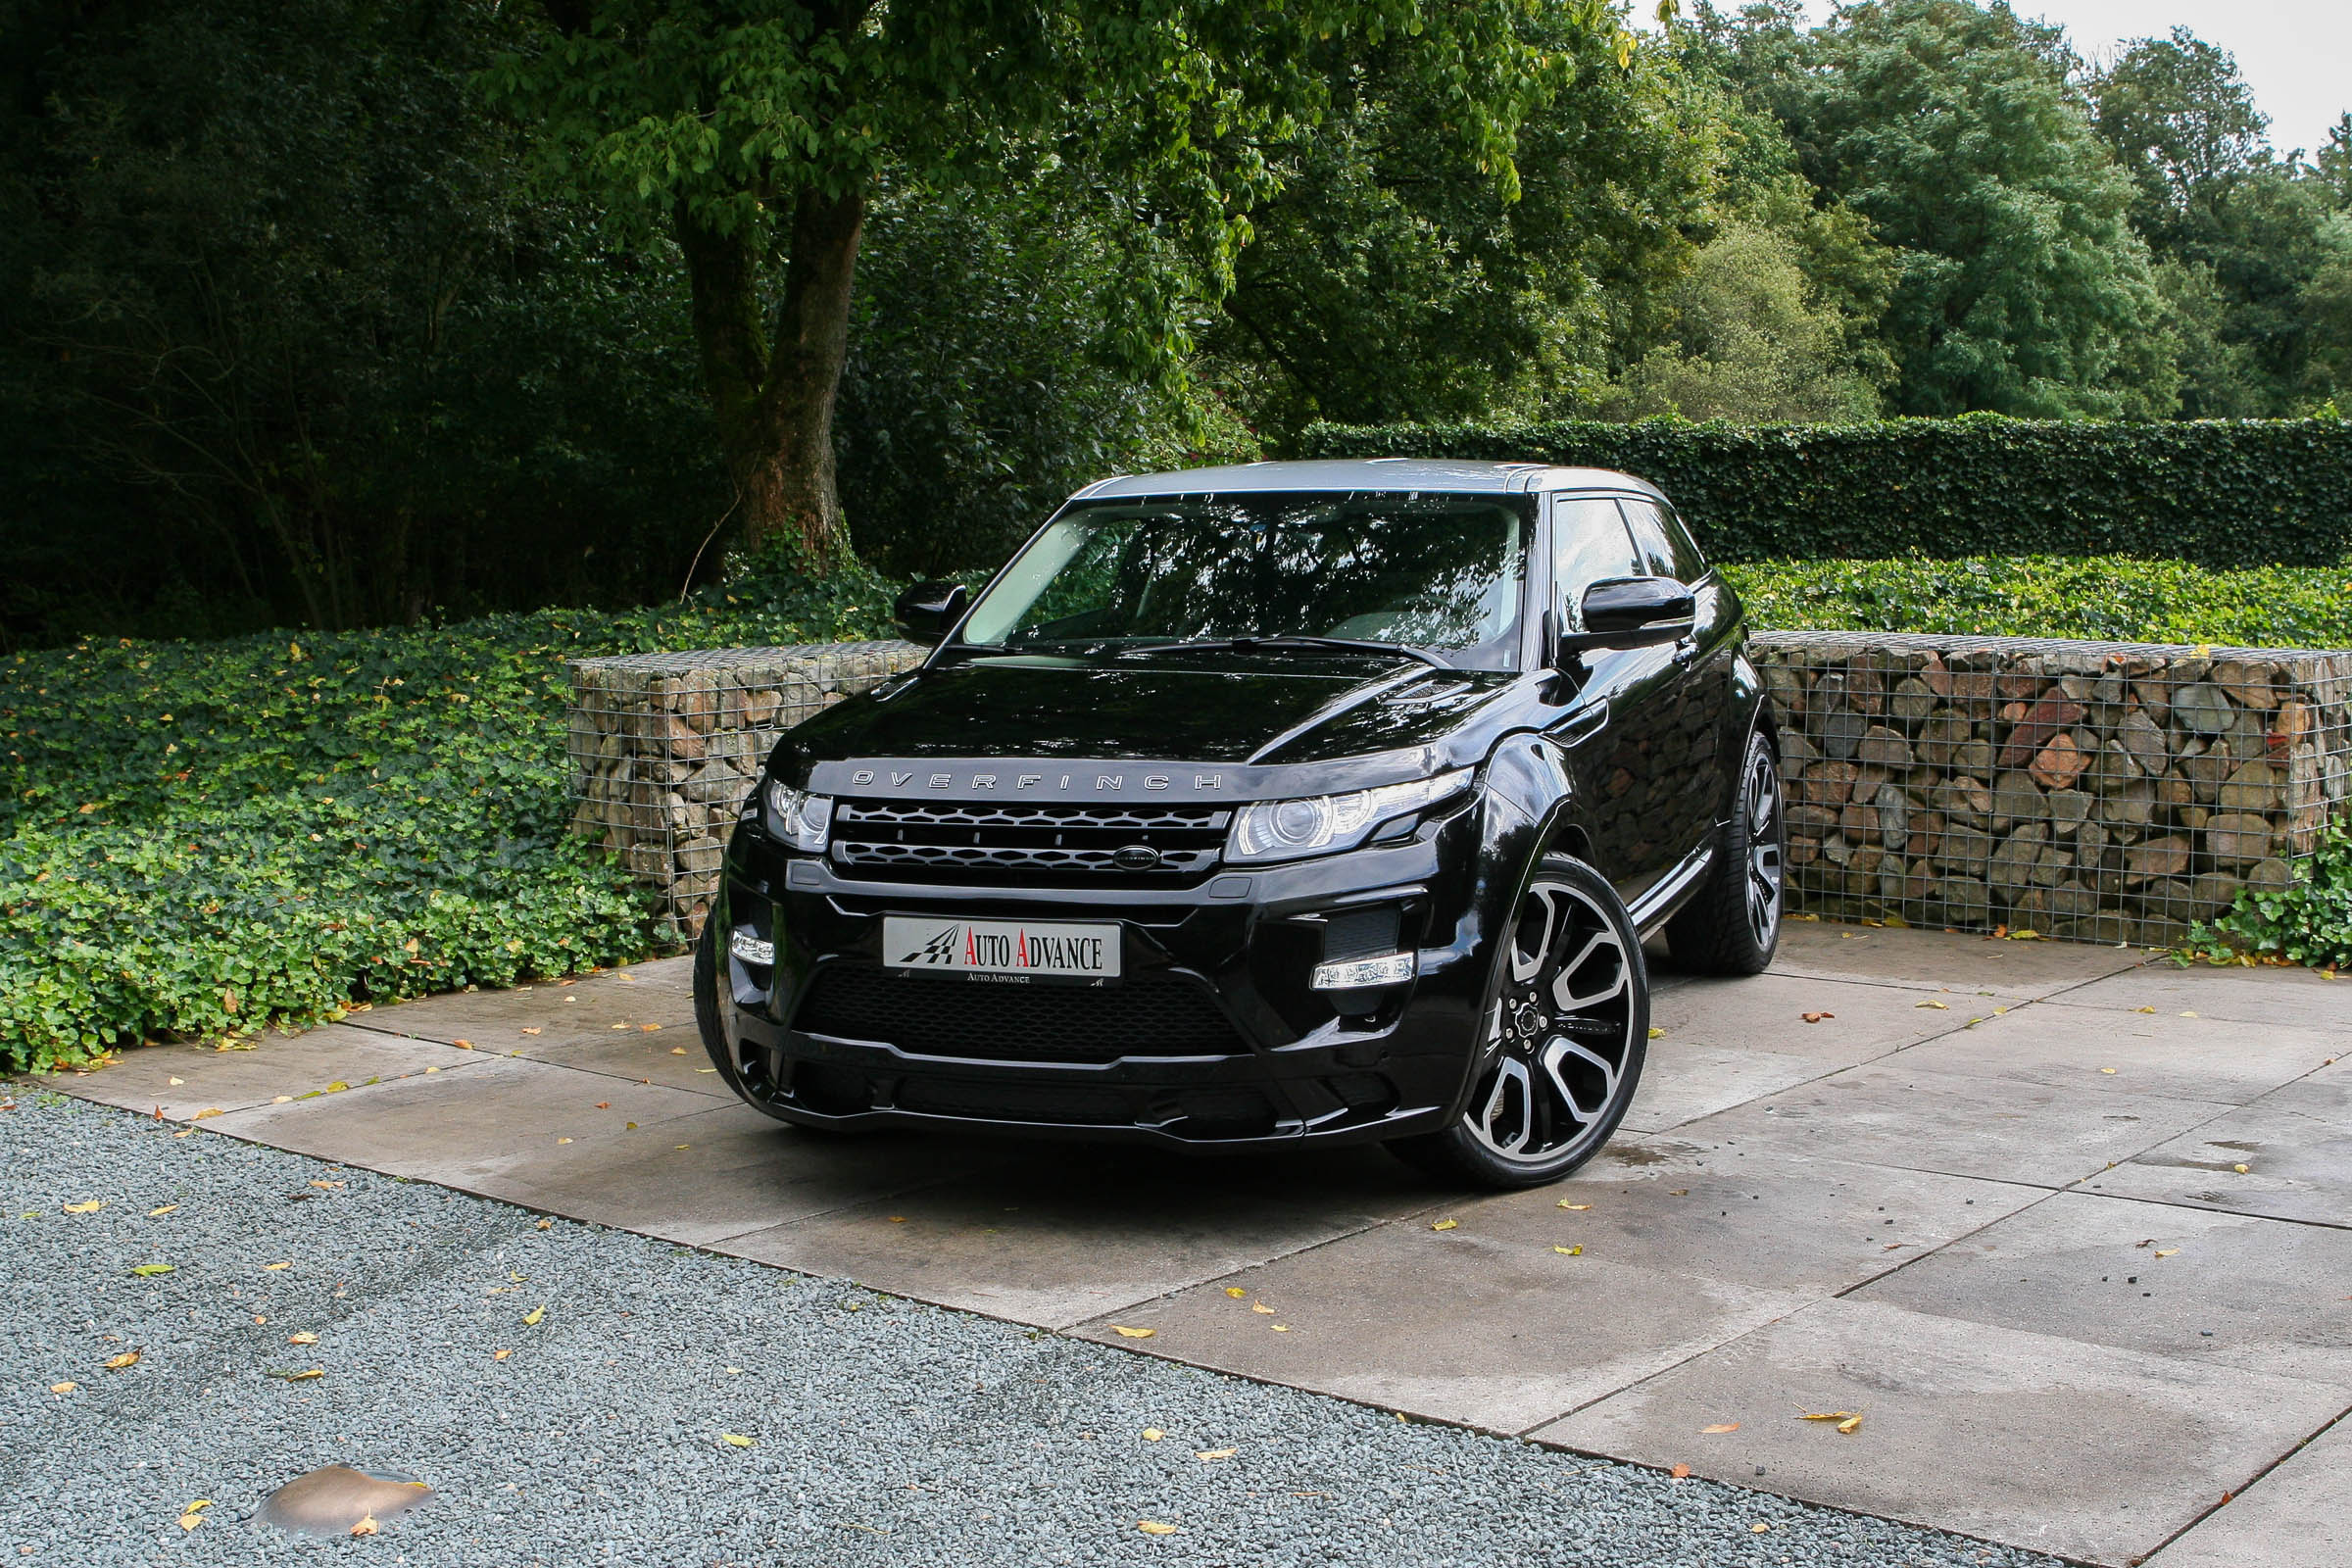 the gallery for range rover evoque coupe custom. Black Bedroom Furniture Sets. Home Design Ideas